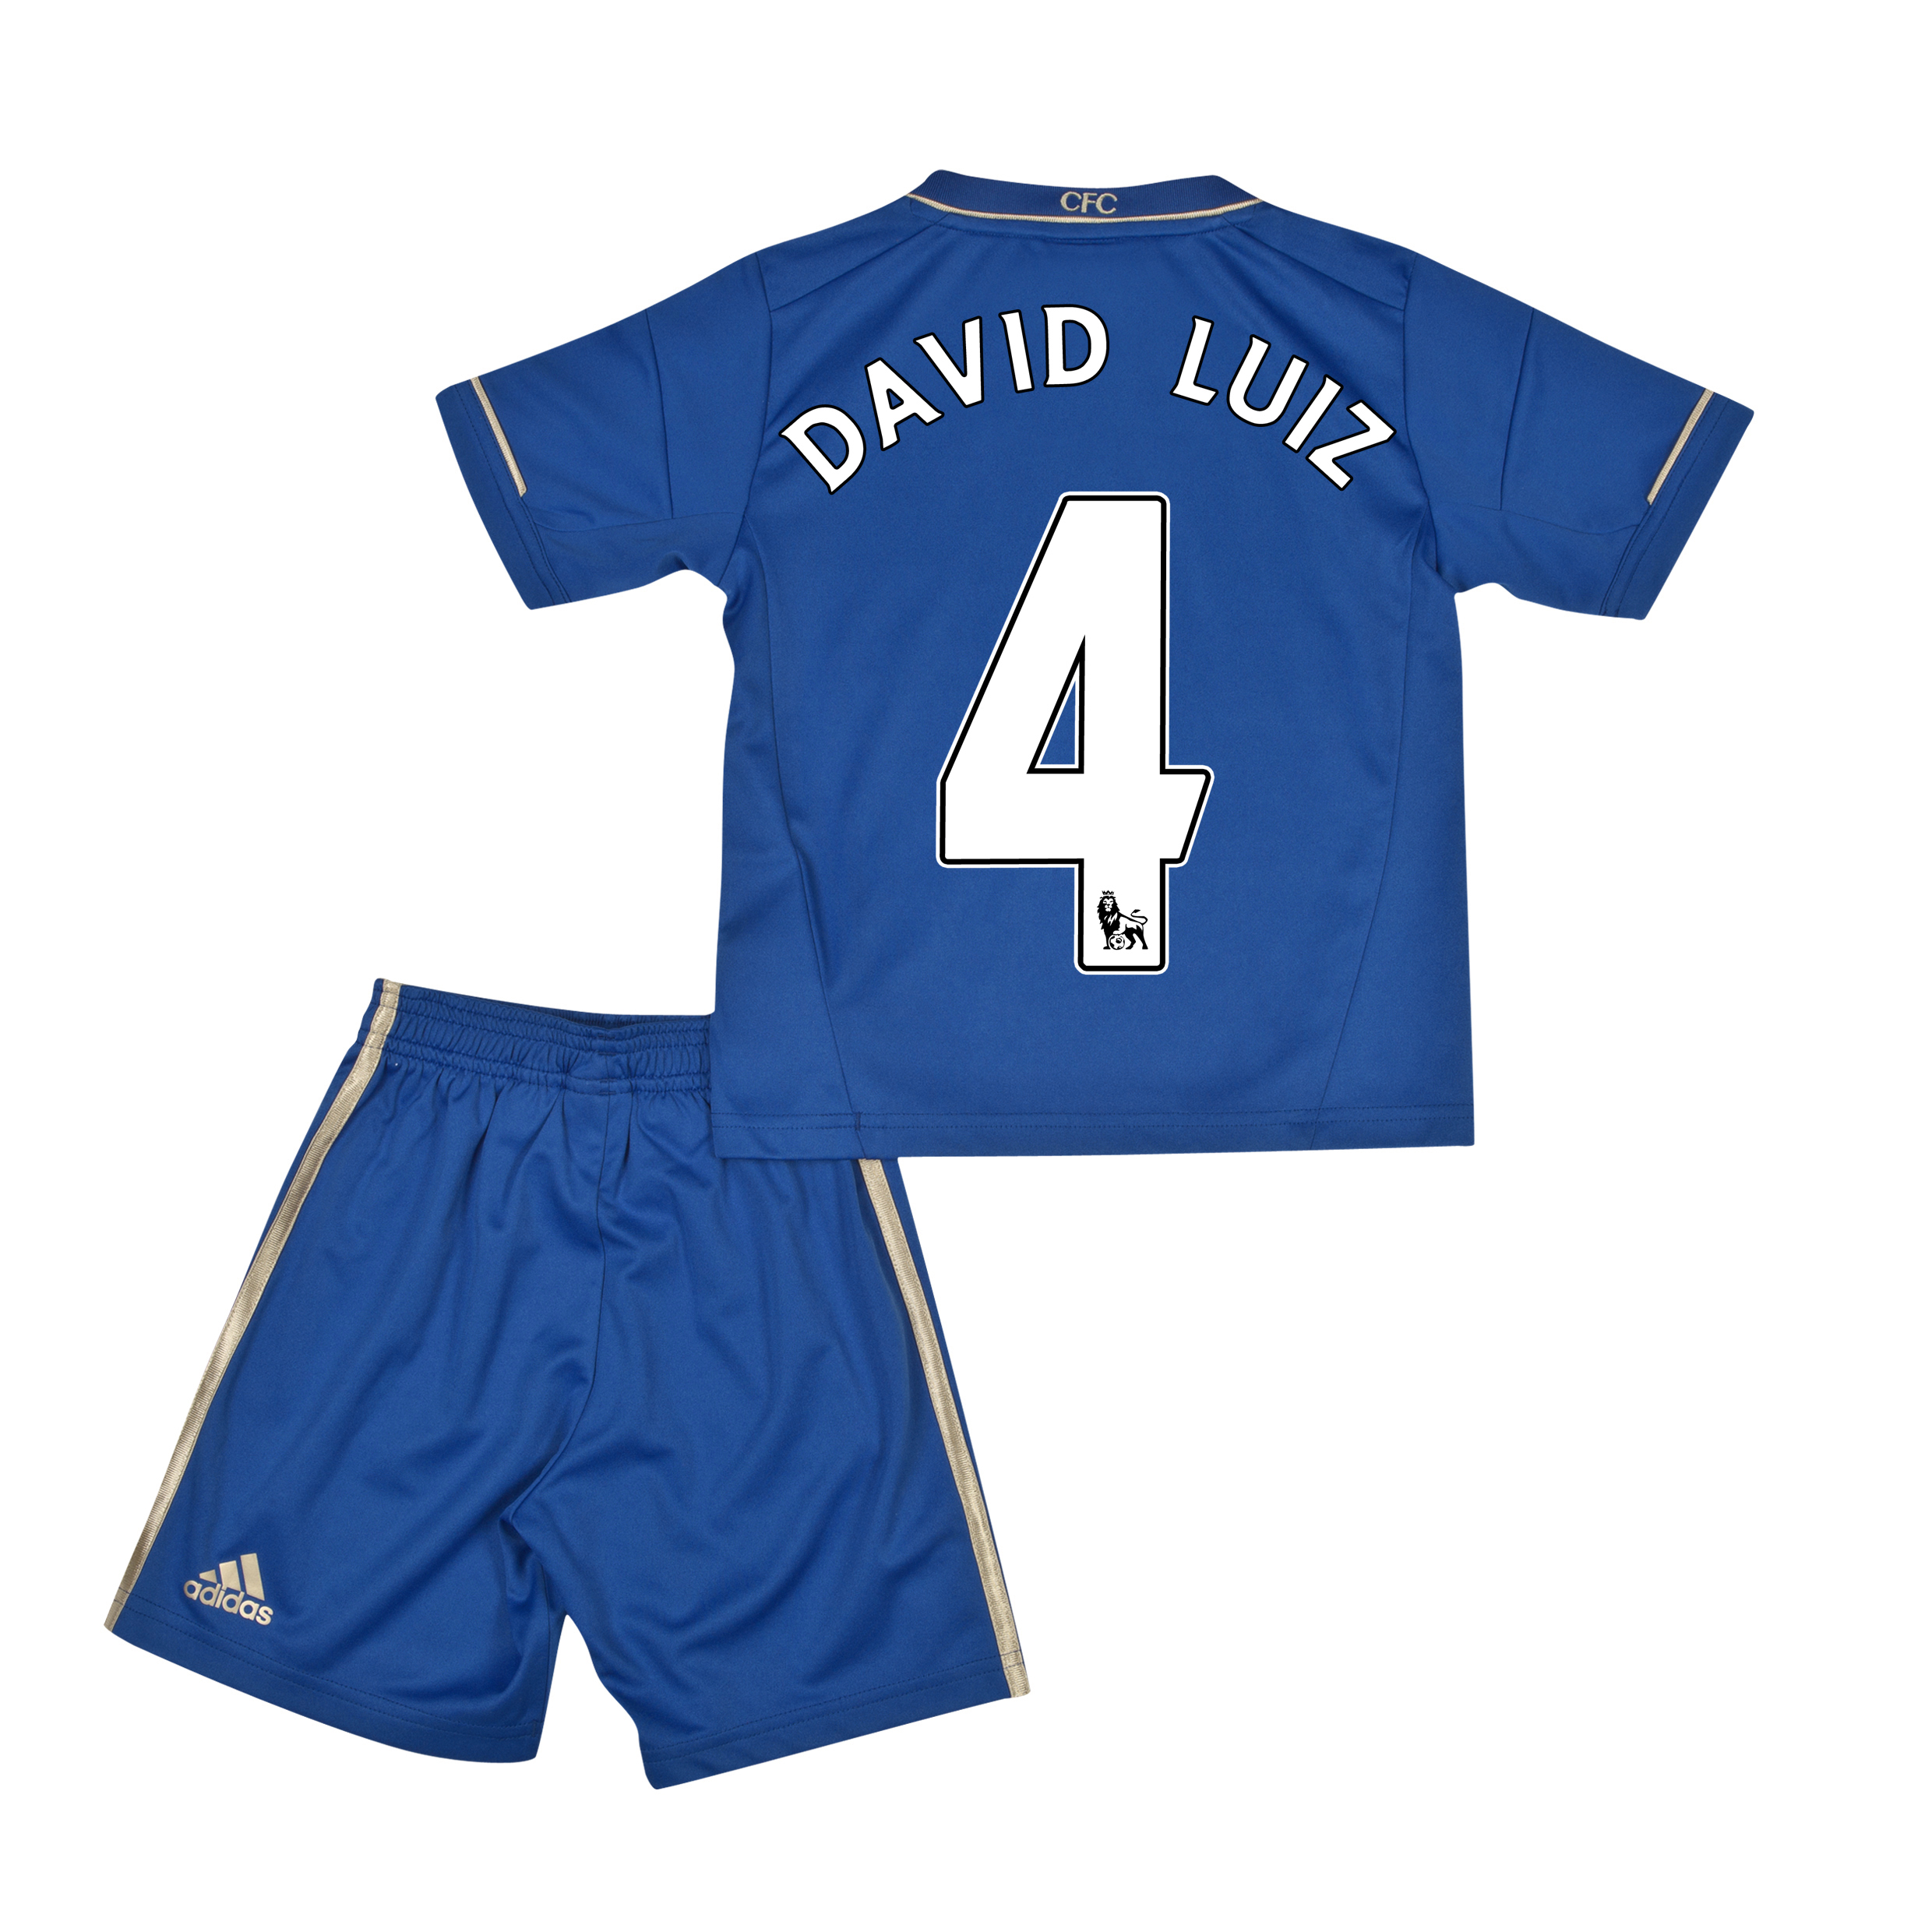 Chelsea Home Mini Kit 2012/13 with David Luiz 4 printing